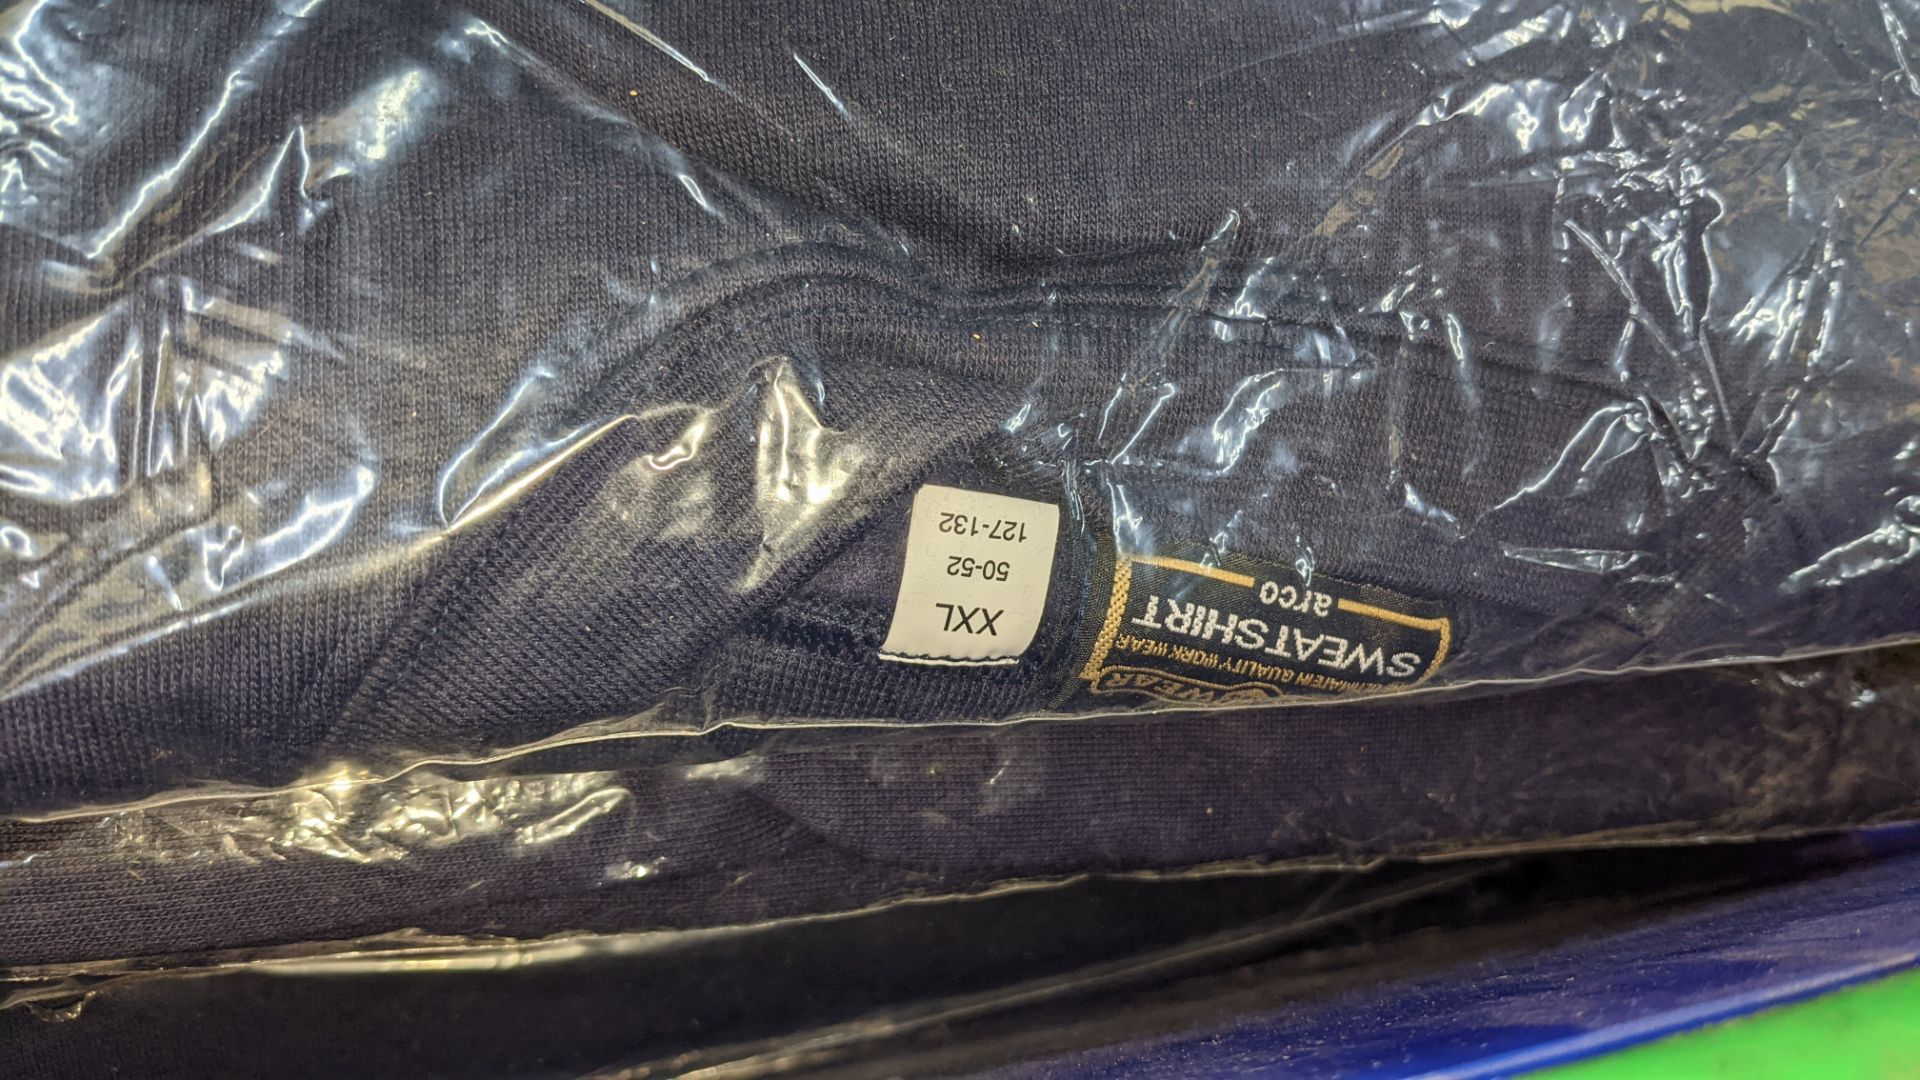 11 off workwear blue sweatshirts - the contents of 1 crate. NB crate excluded - Image 4 of 5